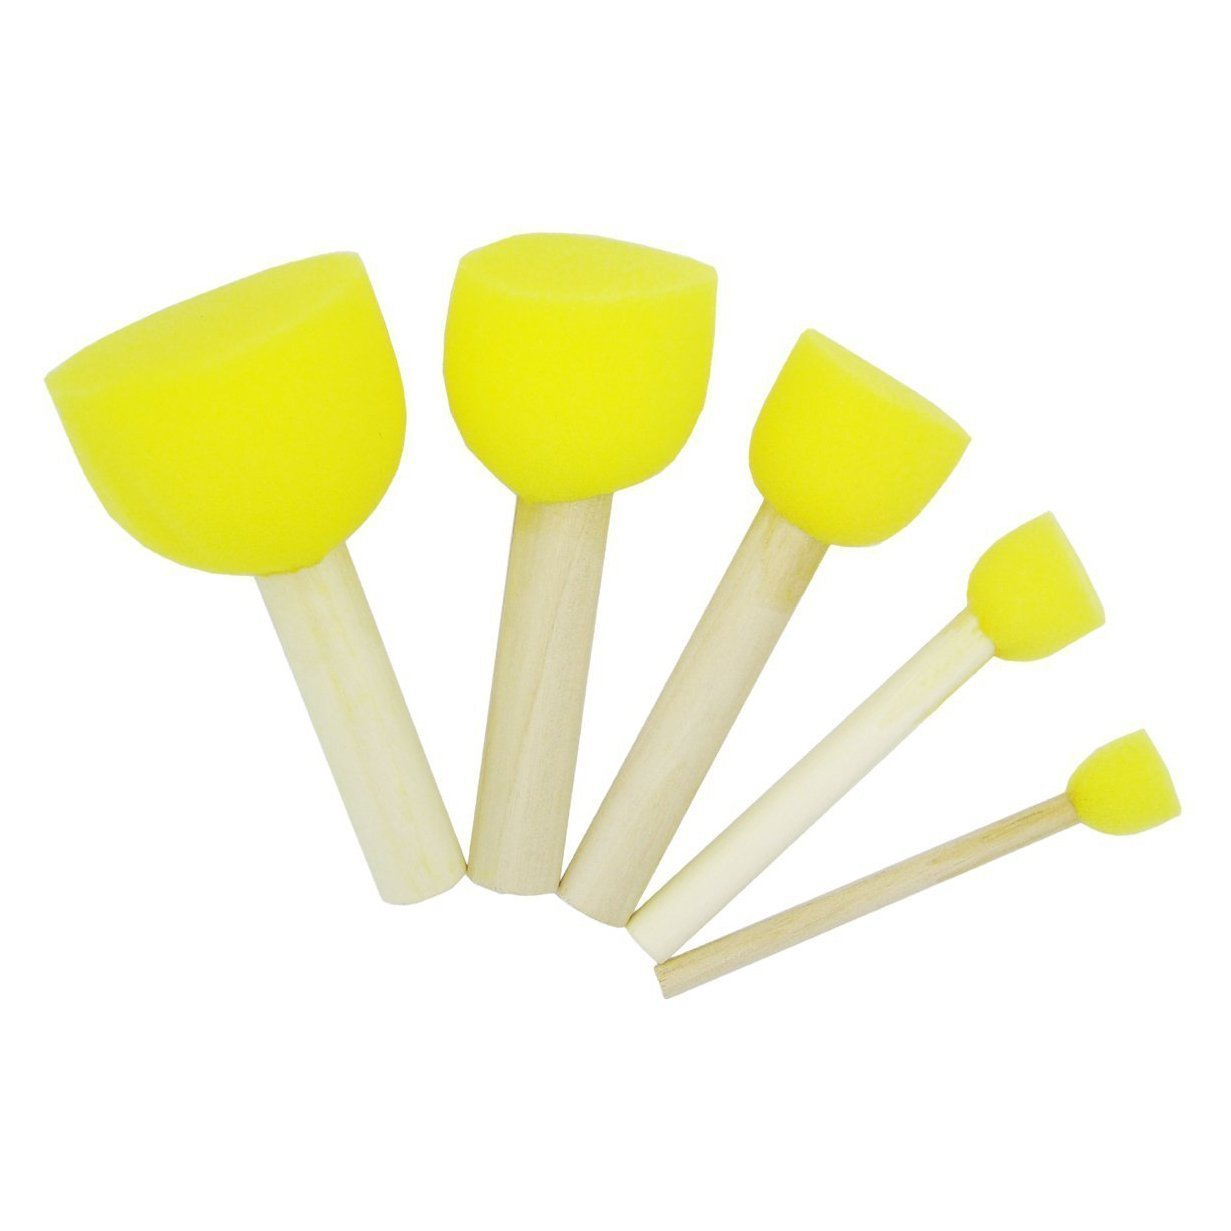 Koreyoshi 20 Pcs Round Stencil Sponge Wooden Handle Foam Brush Furniture Art Crafts Painting Tool Supplies Painting Stippler Set DIY Painting Tools in 5 Sizes for Kids (Style 1)